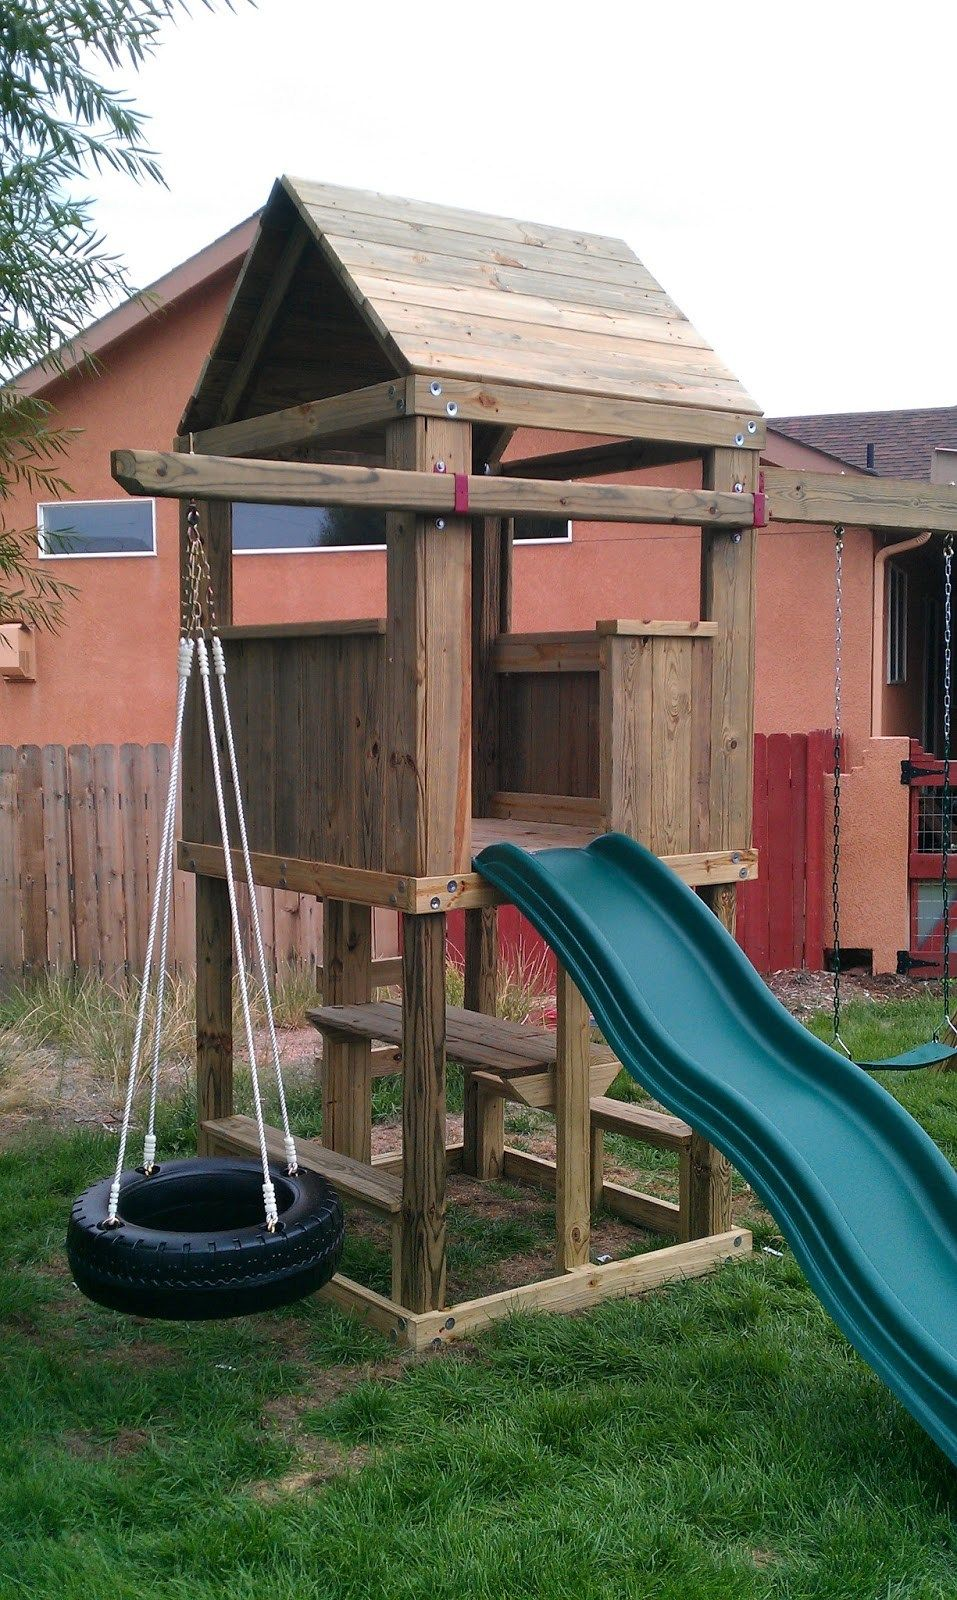 4420 24 4 X4 Clubhouse With Wooden Roof Ladder Entry Standard